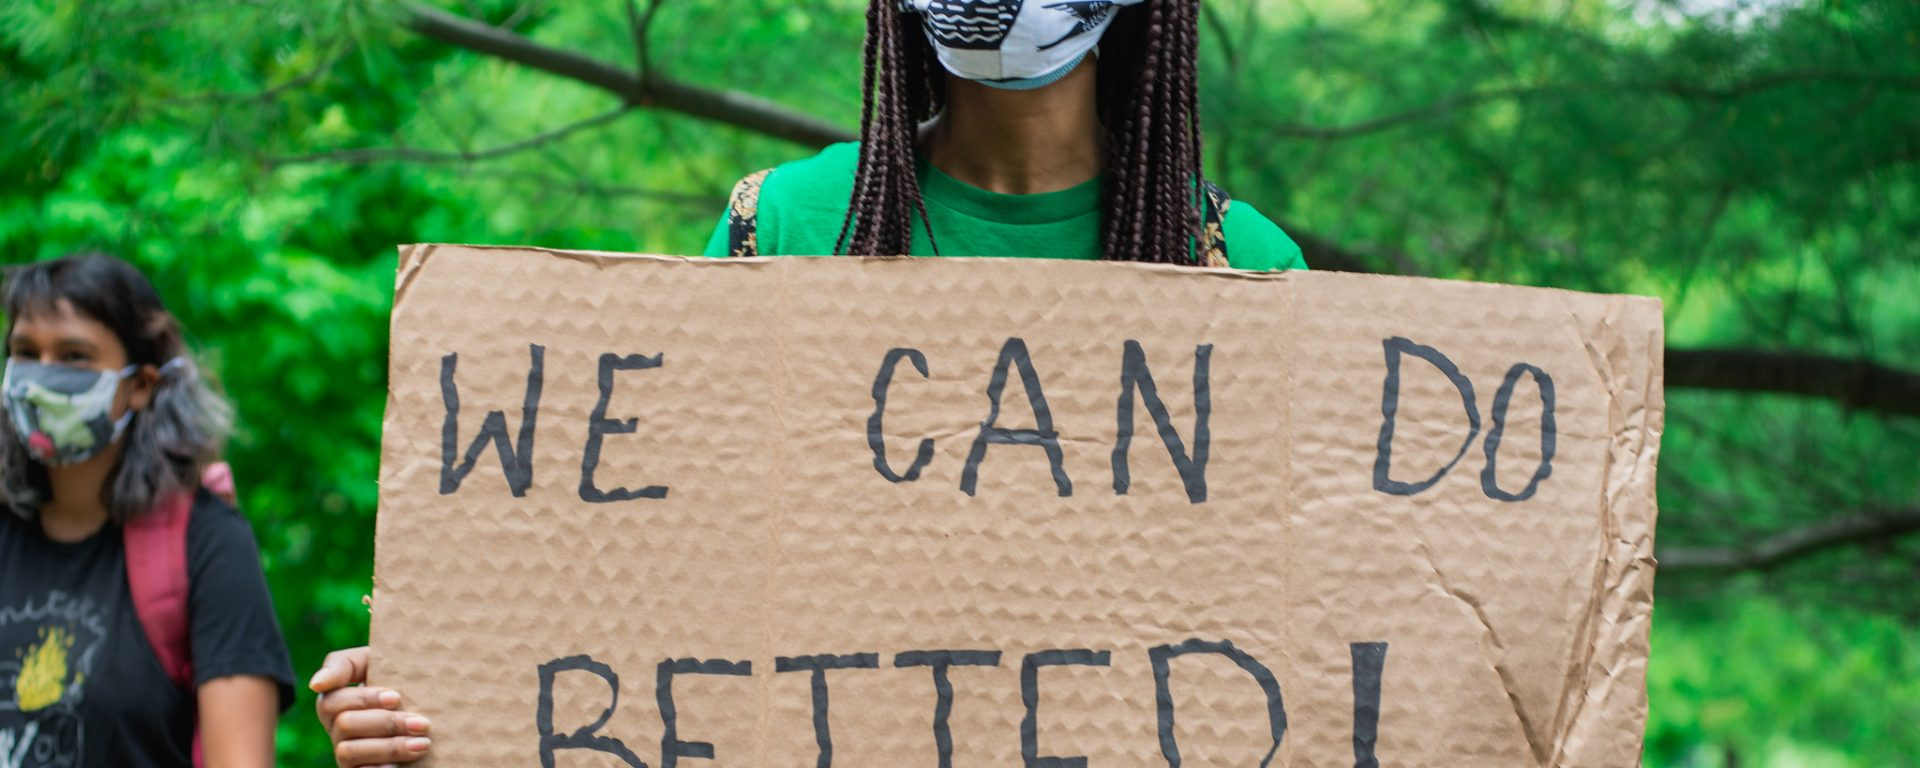 """A masked protester holding a cardboard sign which reads """"We can do better!"""" Photo taken by Jason Hargrove"""